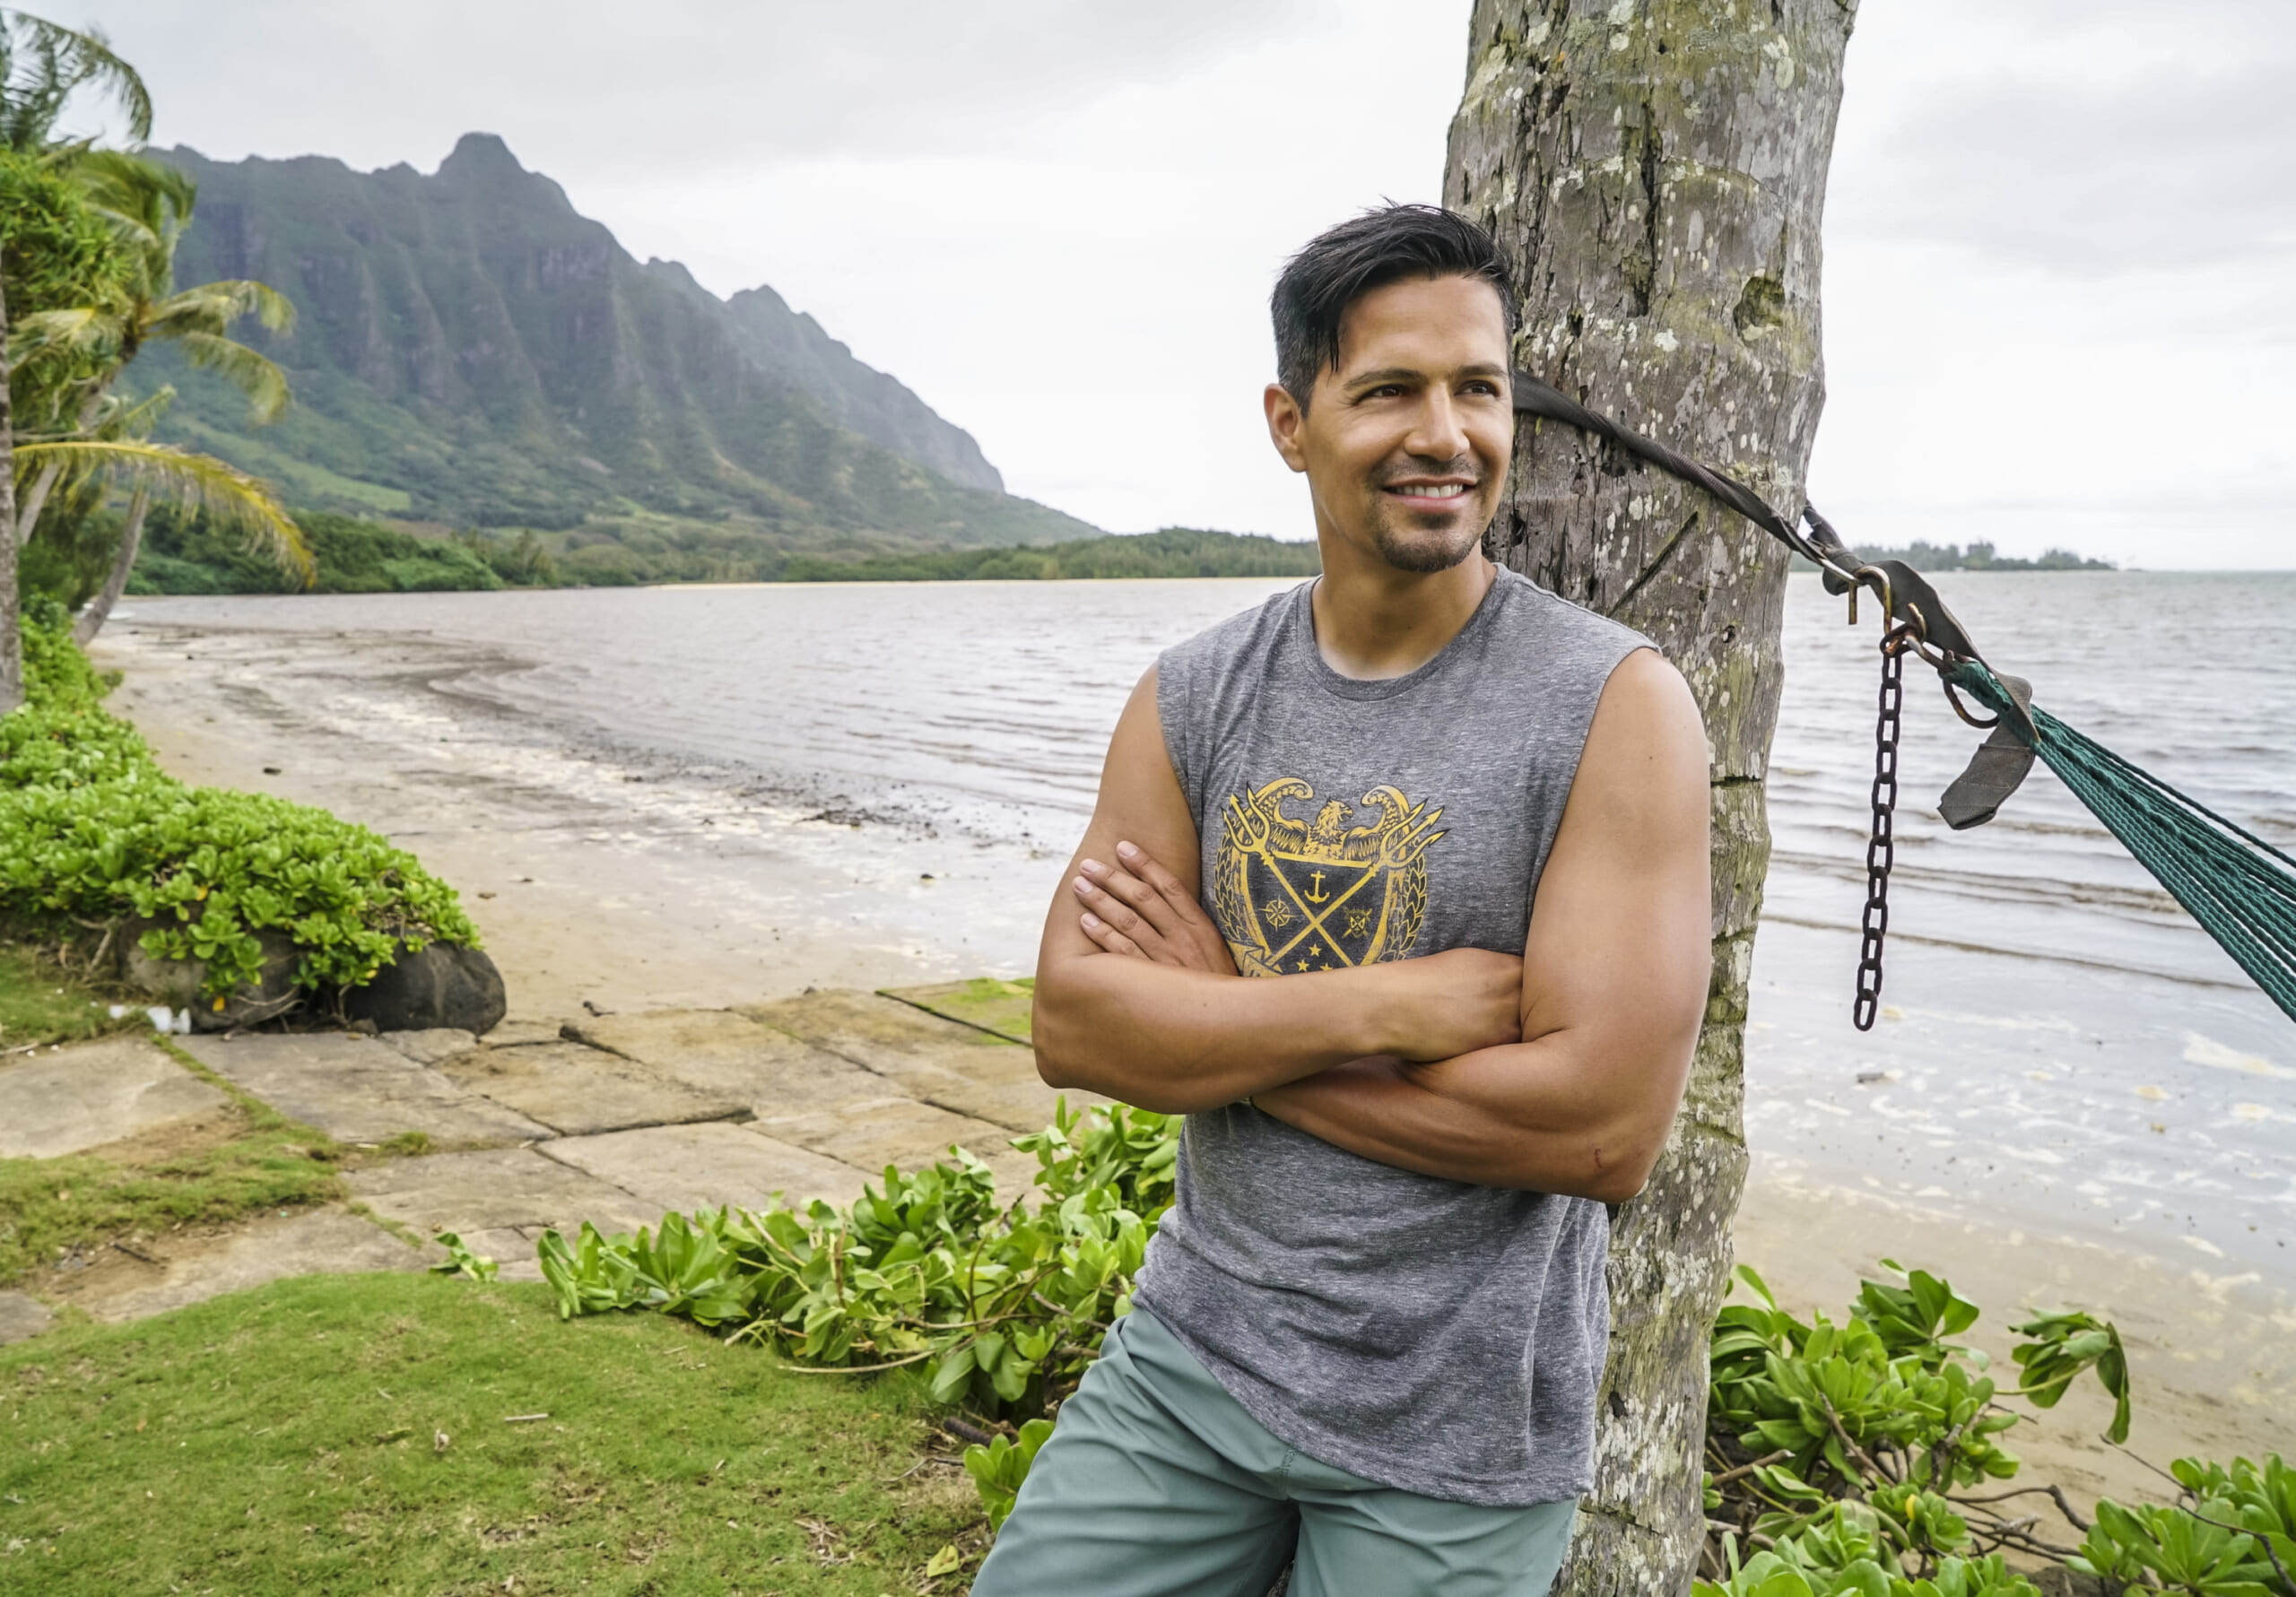 MAGNUM P.I. is a modern take on the classic series starring Jay Hernandez (pictured) as Thomas Magnum, a decorated former Navy SEAL who, upon returning home from Afghanistan, repurposes his military skills to become a private investigator in Hawaii. MAGNUM P.I. will premiere this fall on Mondays (9:00-10:00 PM, ET/PT) on the CBS Television Network. Photo: Karen Neal/CBS ©2018 CBS Broadcasting, Inc. All Rights Reserved.